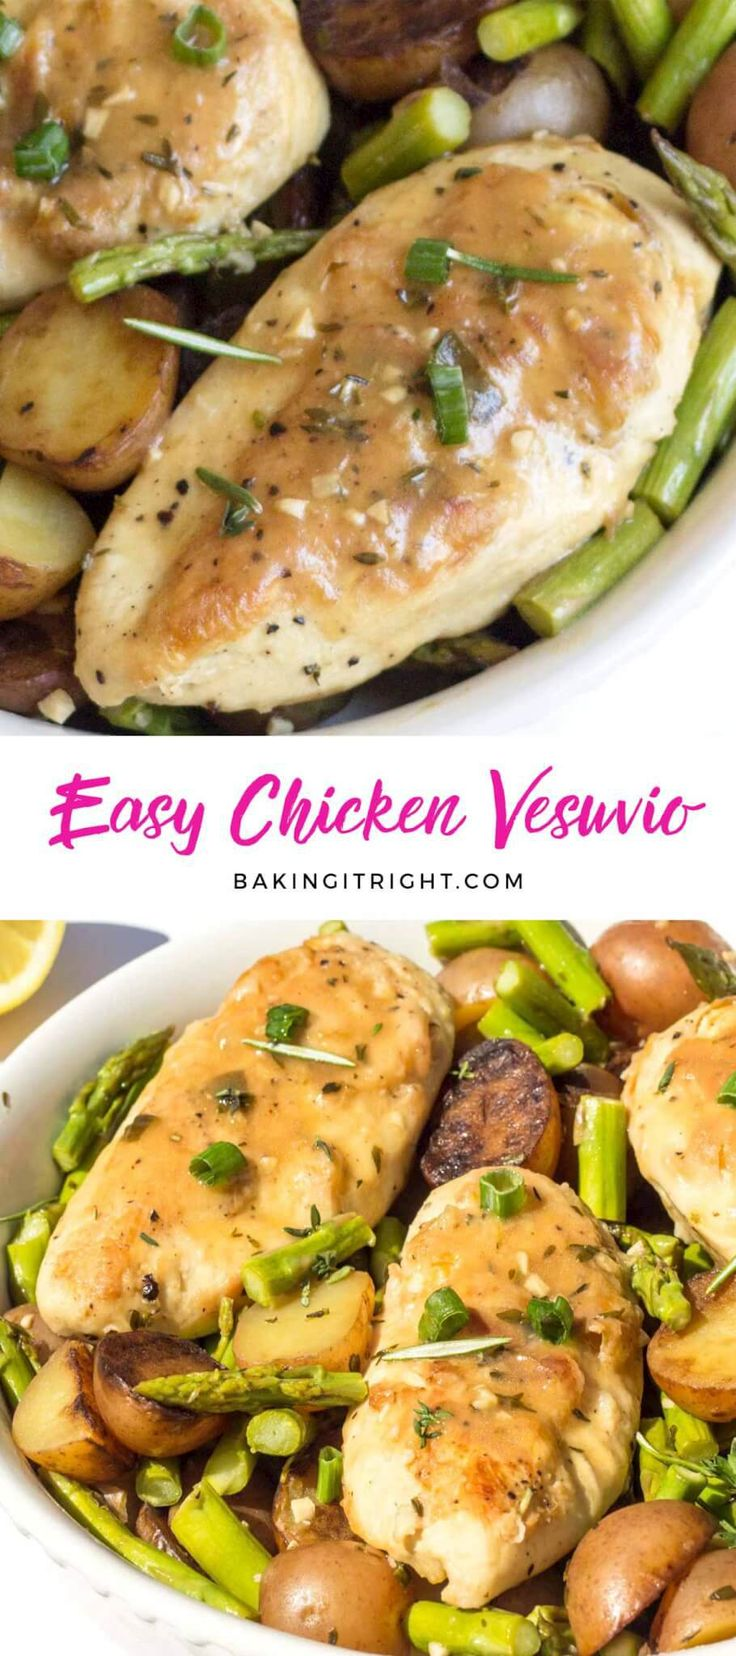 The 25 best vesuvio potatoes ideas on pinterest chicken vesuvio easy chicken vesuvio an easy and moist chicken dish with white wine red potatoes forumfinder Choice Image